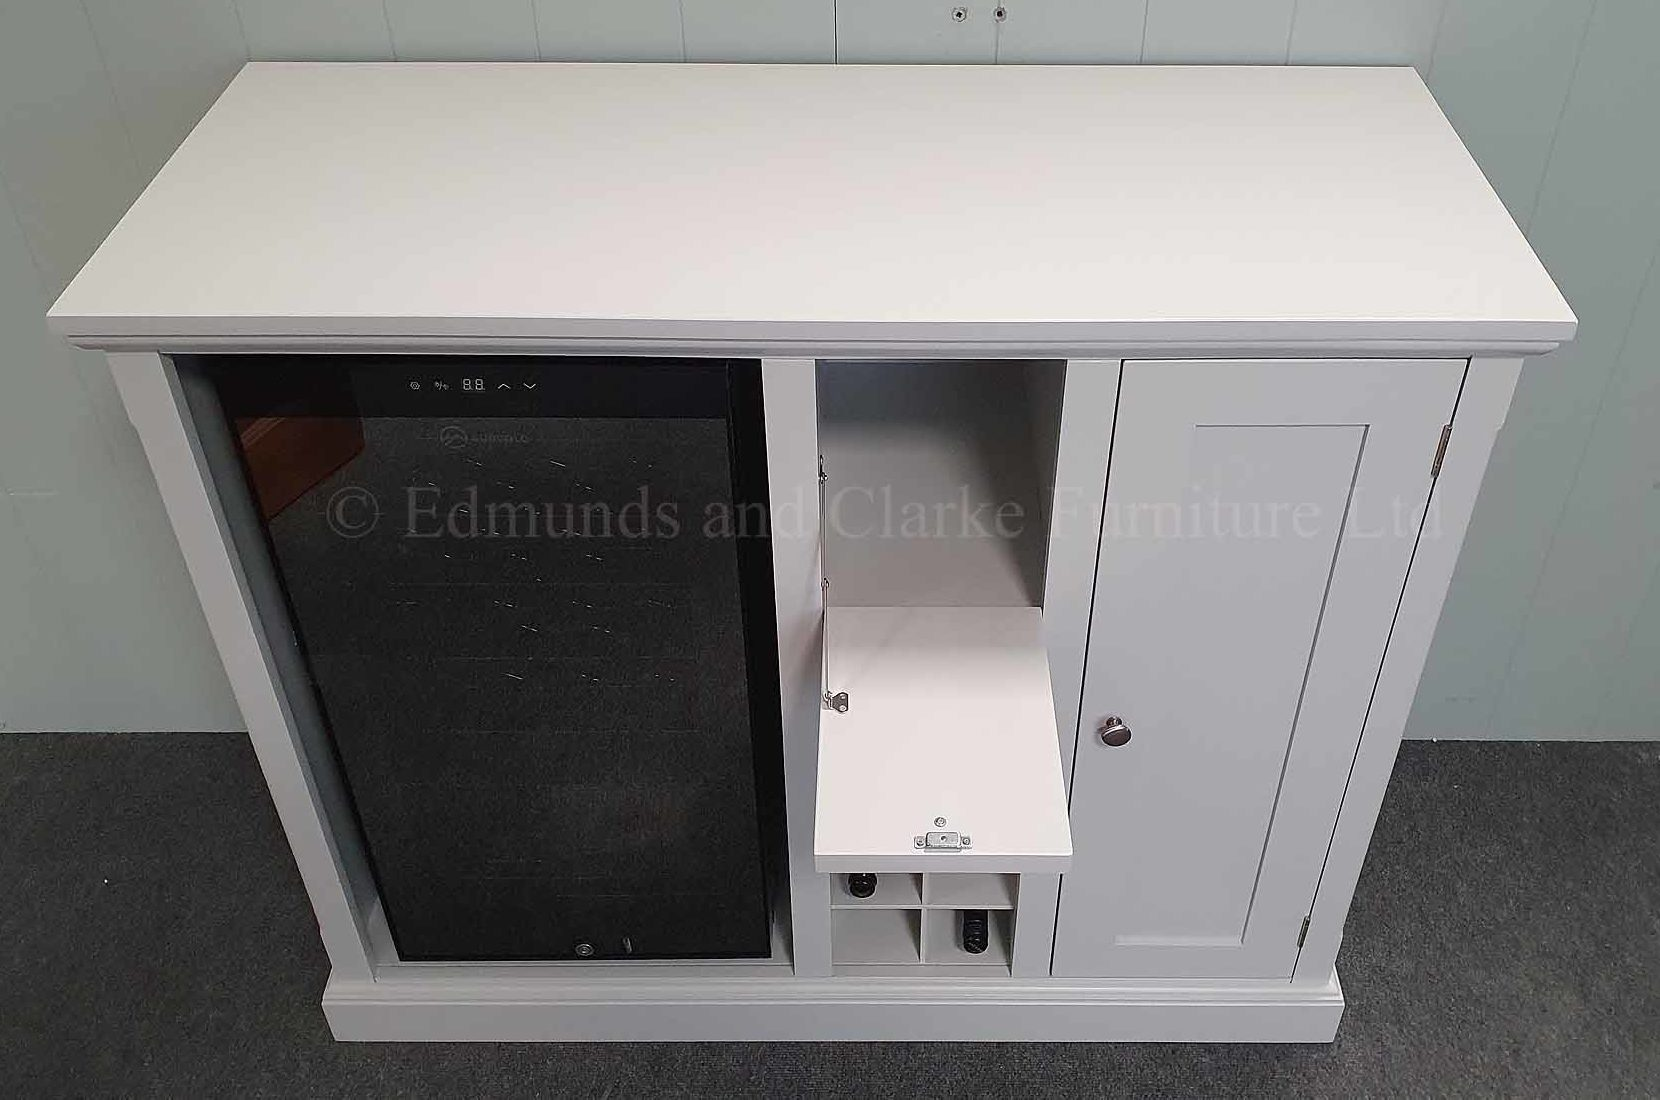 Sideboard including drinks fridge drop down tray for pouring glasses of wine